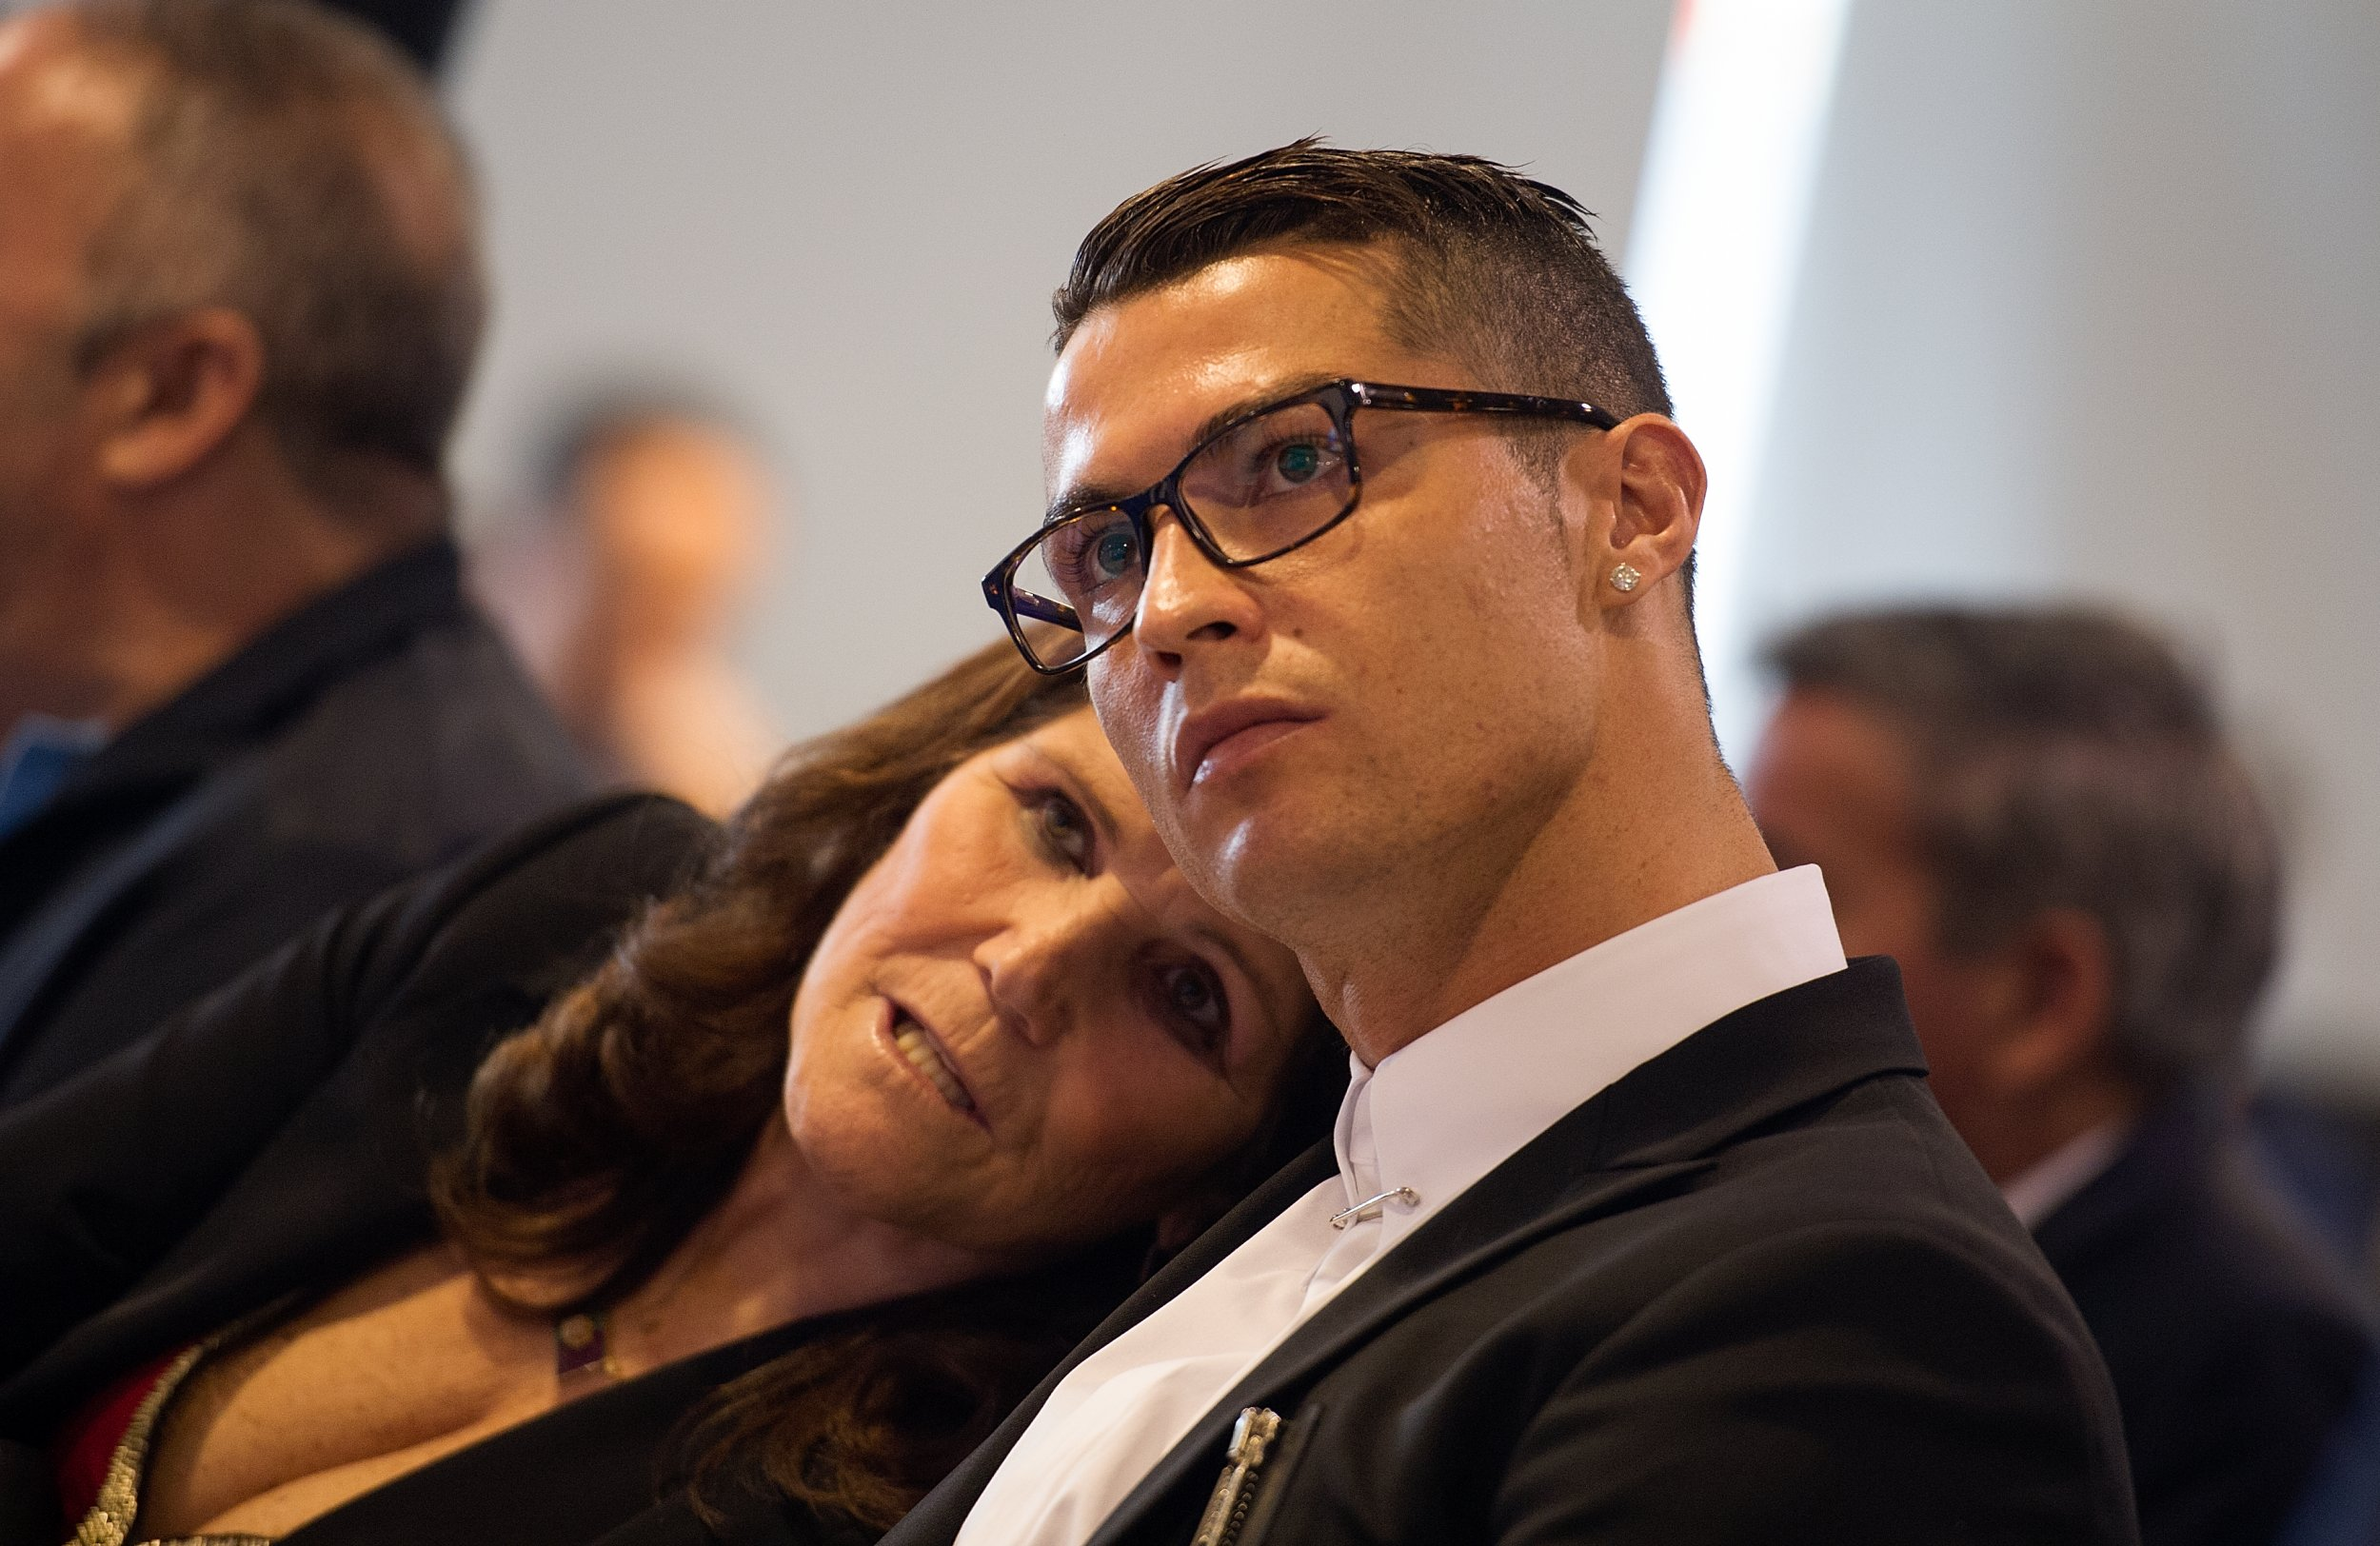 Cristiano Ronaldo Why Real Madrid Star Adopted Role of Father